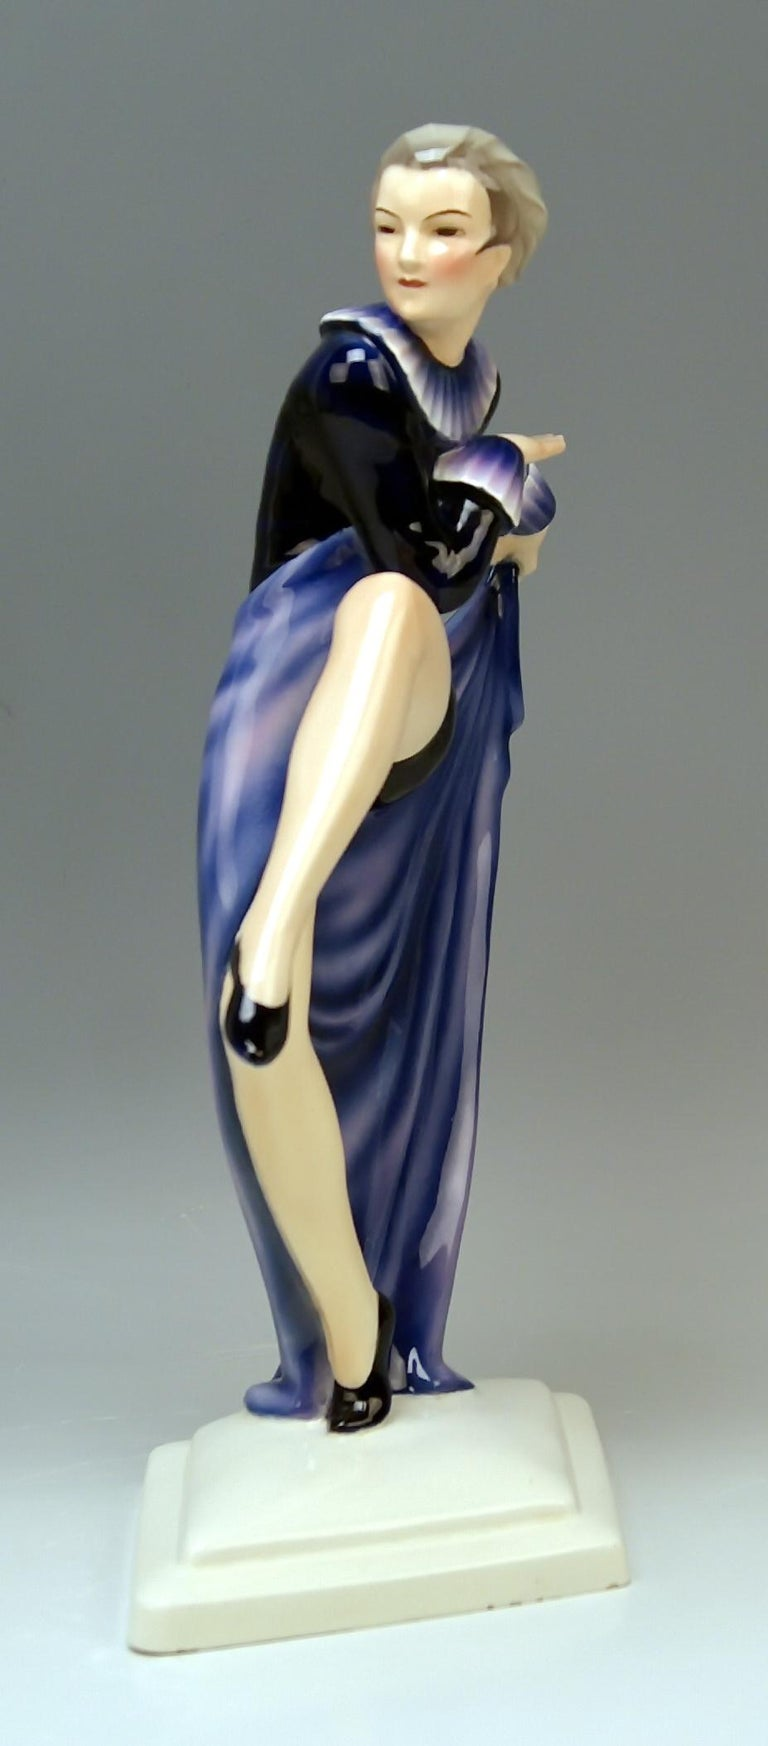 Austrian Goldscheider Vienna Lorenzl Lady Dancer With Arms Rear-Facing Model 6003 1930-35 For Sale